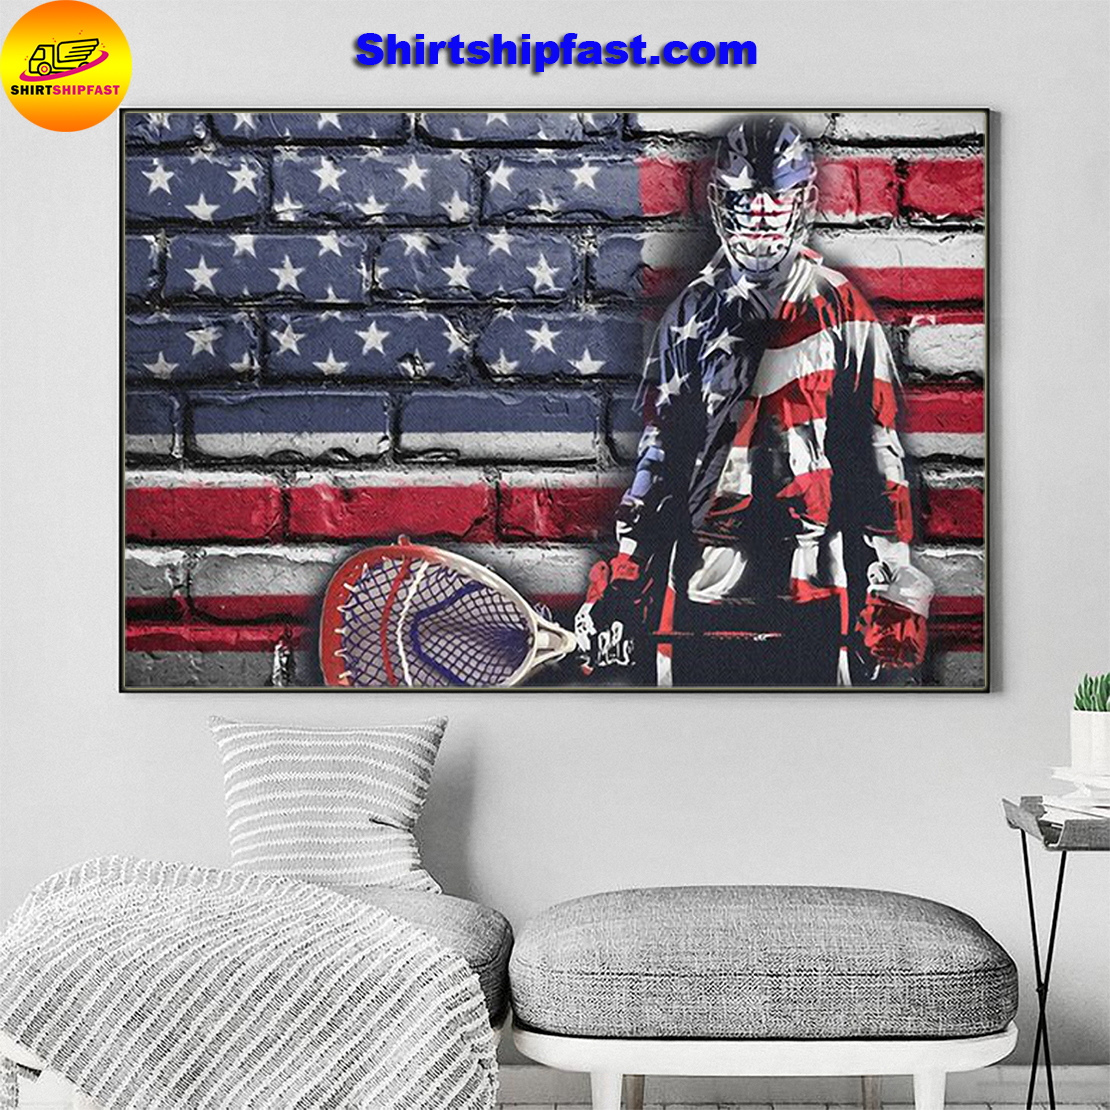 Ice hookey goalie flag poster and canvas - Picture 2